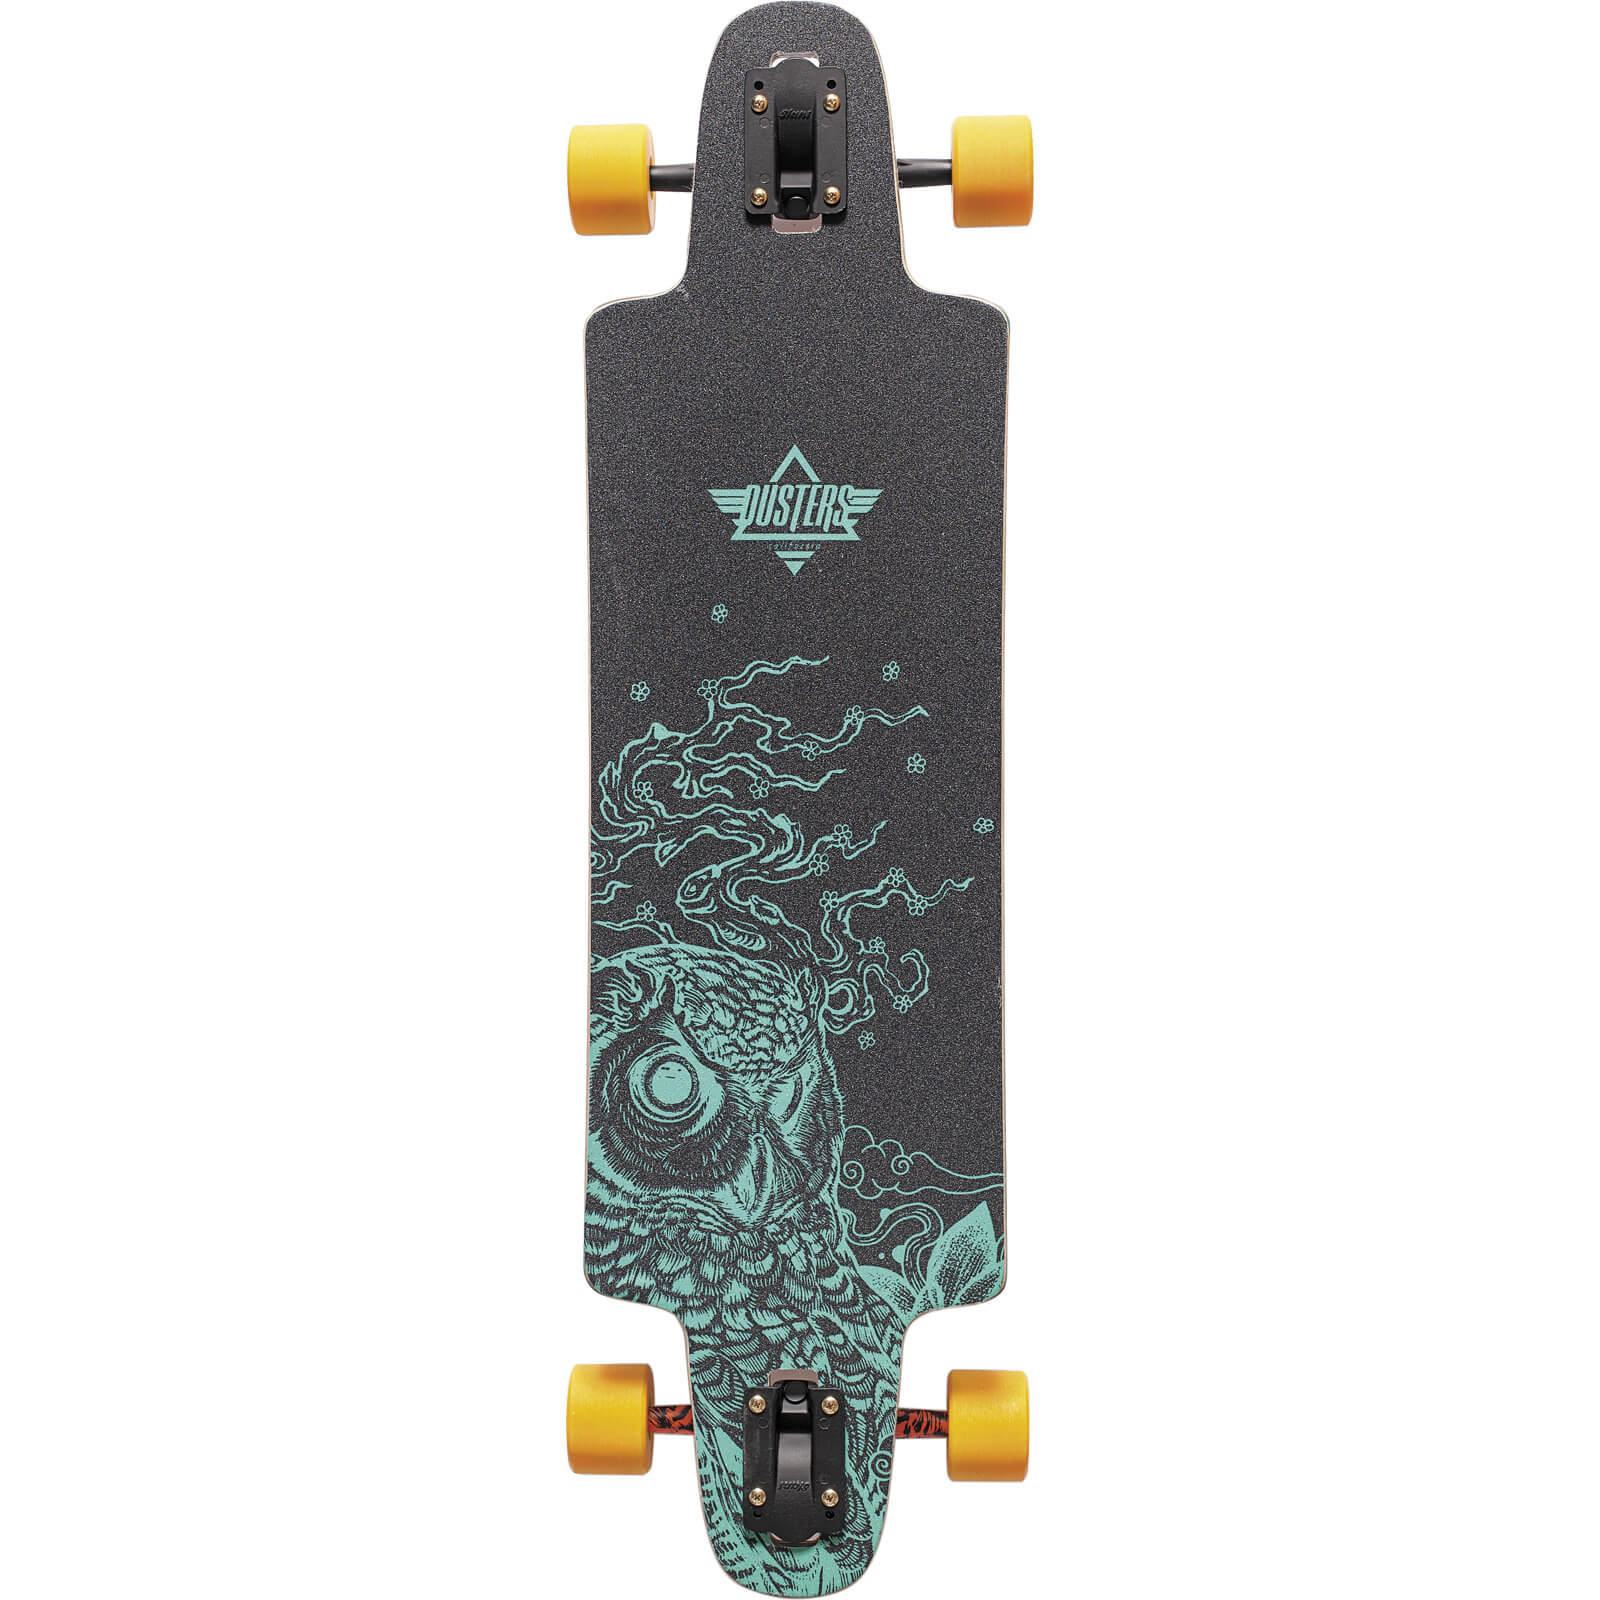 Dusters California Skateboards Drop Thru Regrowth Complete